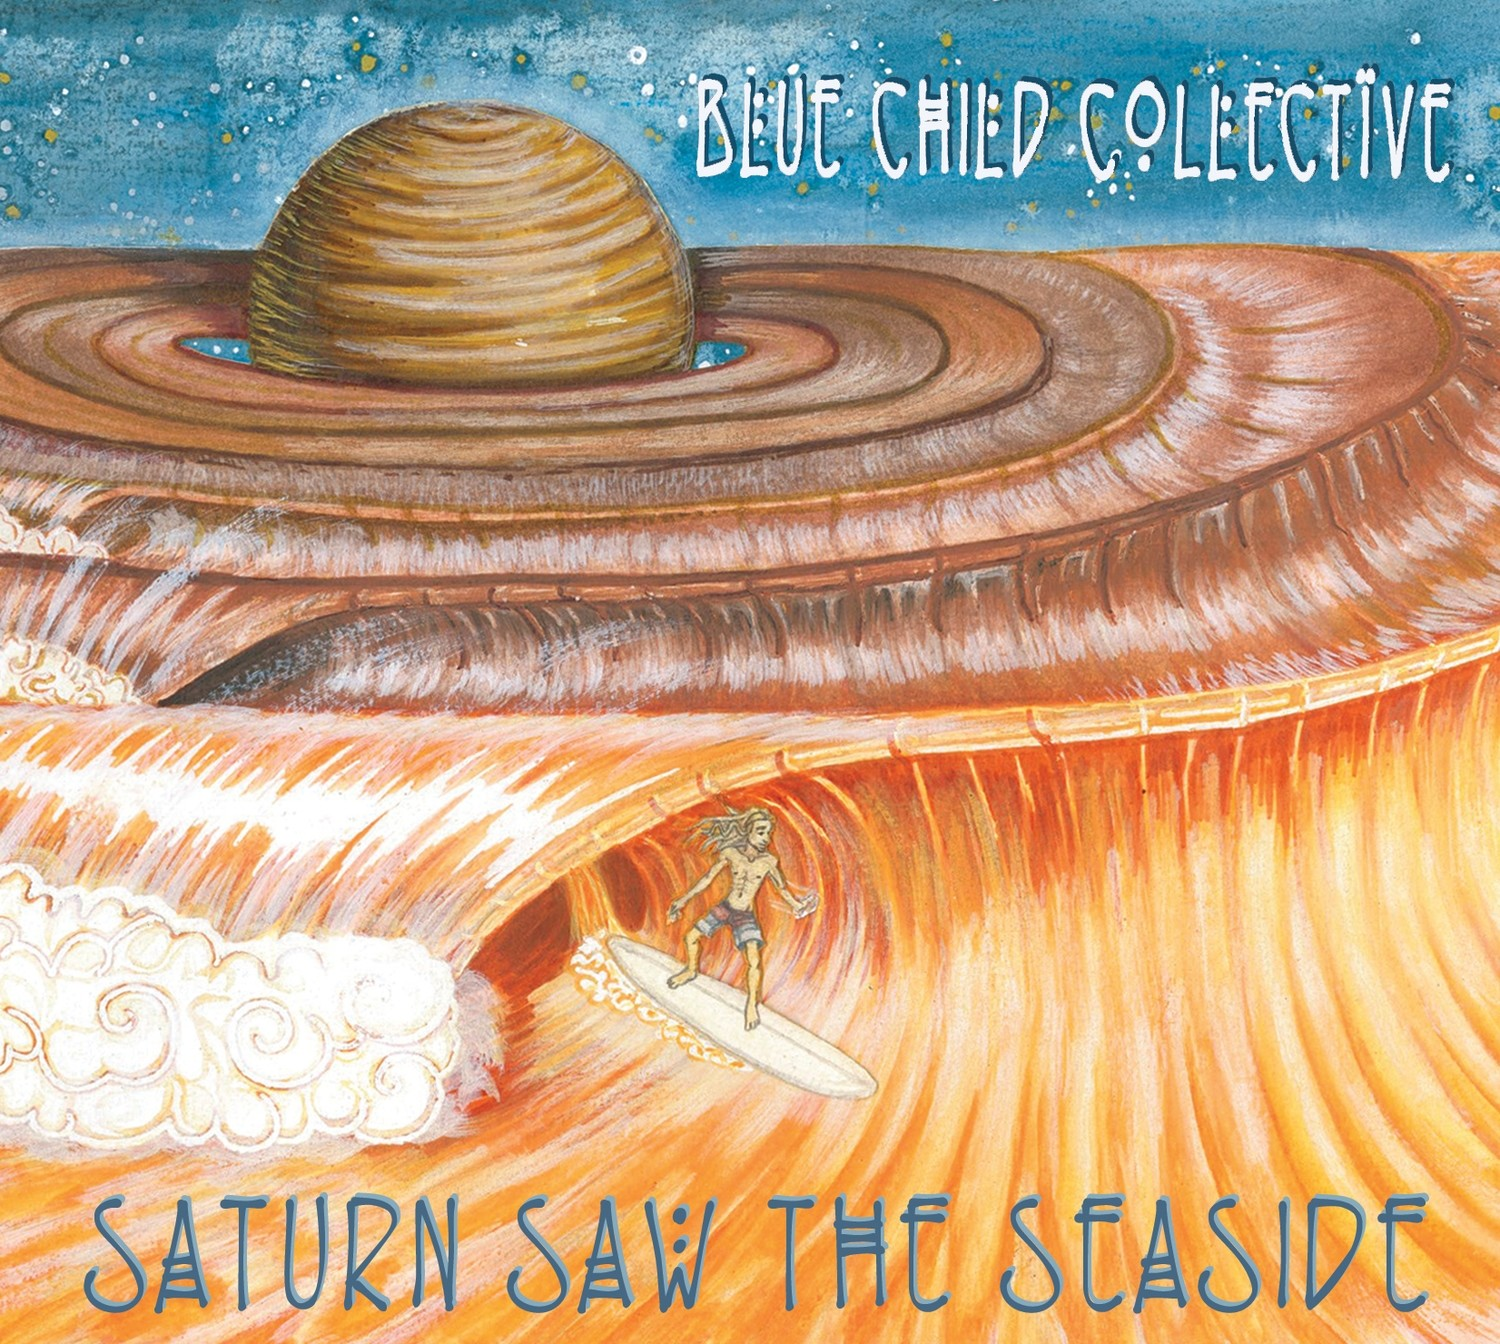 Saturn Saw The Seaside (2016) Physical Album CD/DVD